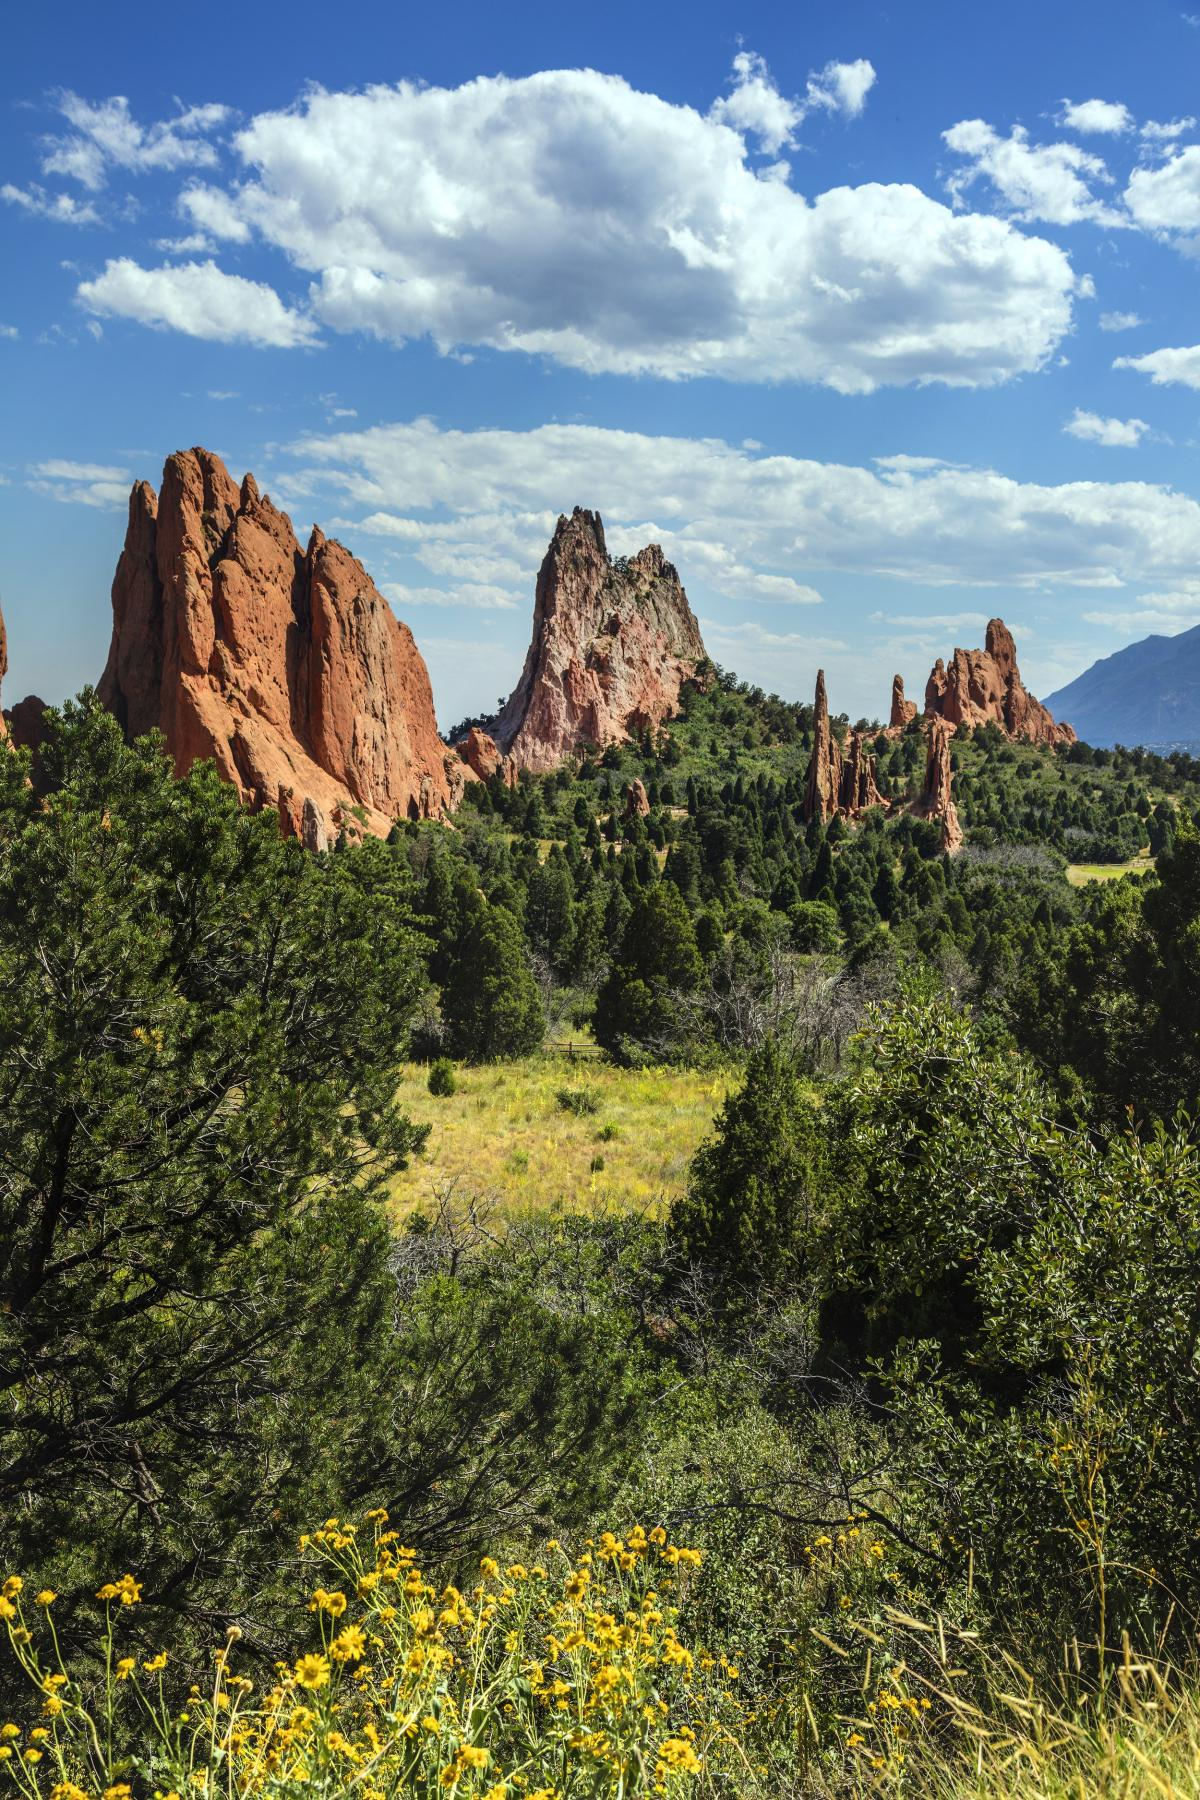 The Garden of the Gods, a public park in Colorado Springs, Colorado USA - Original image from Carol M. Highsmith's America, Library of Congress collection. Digitally enhanced by avopix #393927